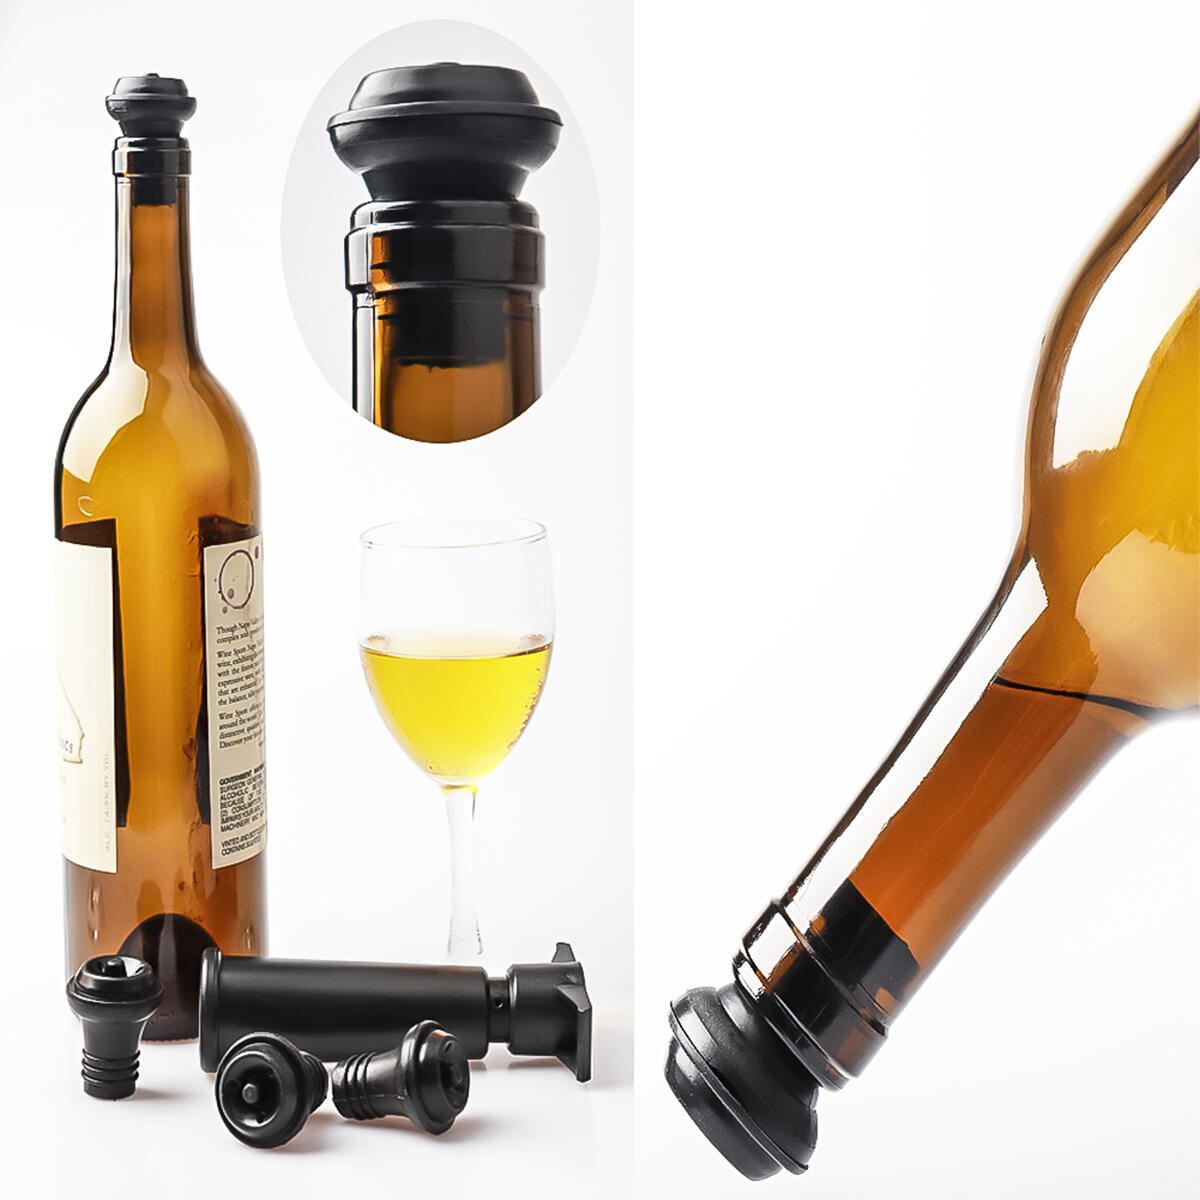 Wine Accessory Set With Wine Saver Vacuum Pump and 3-in-1 Corkscrew